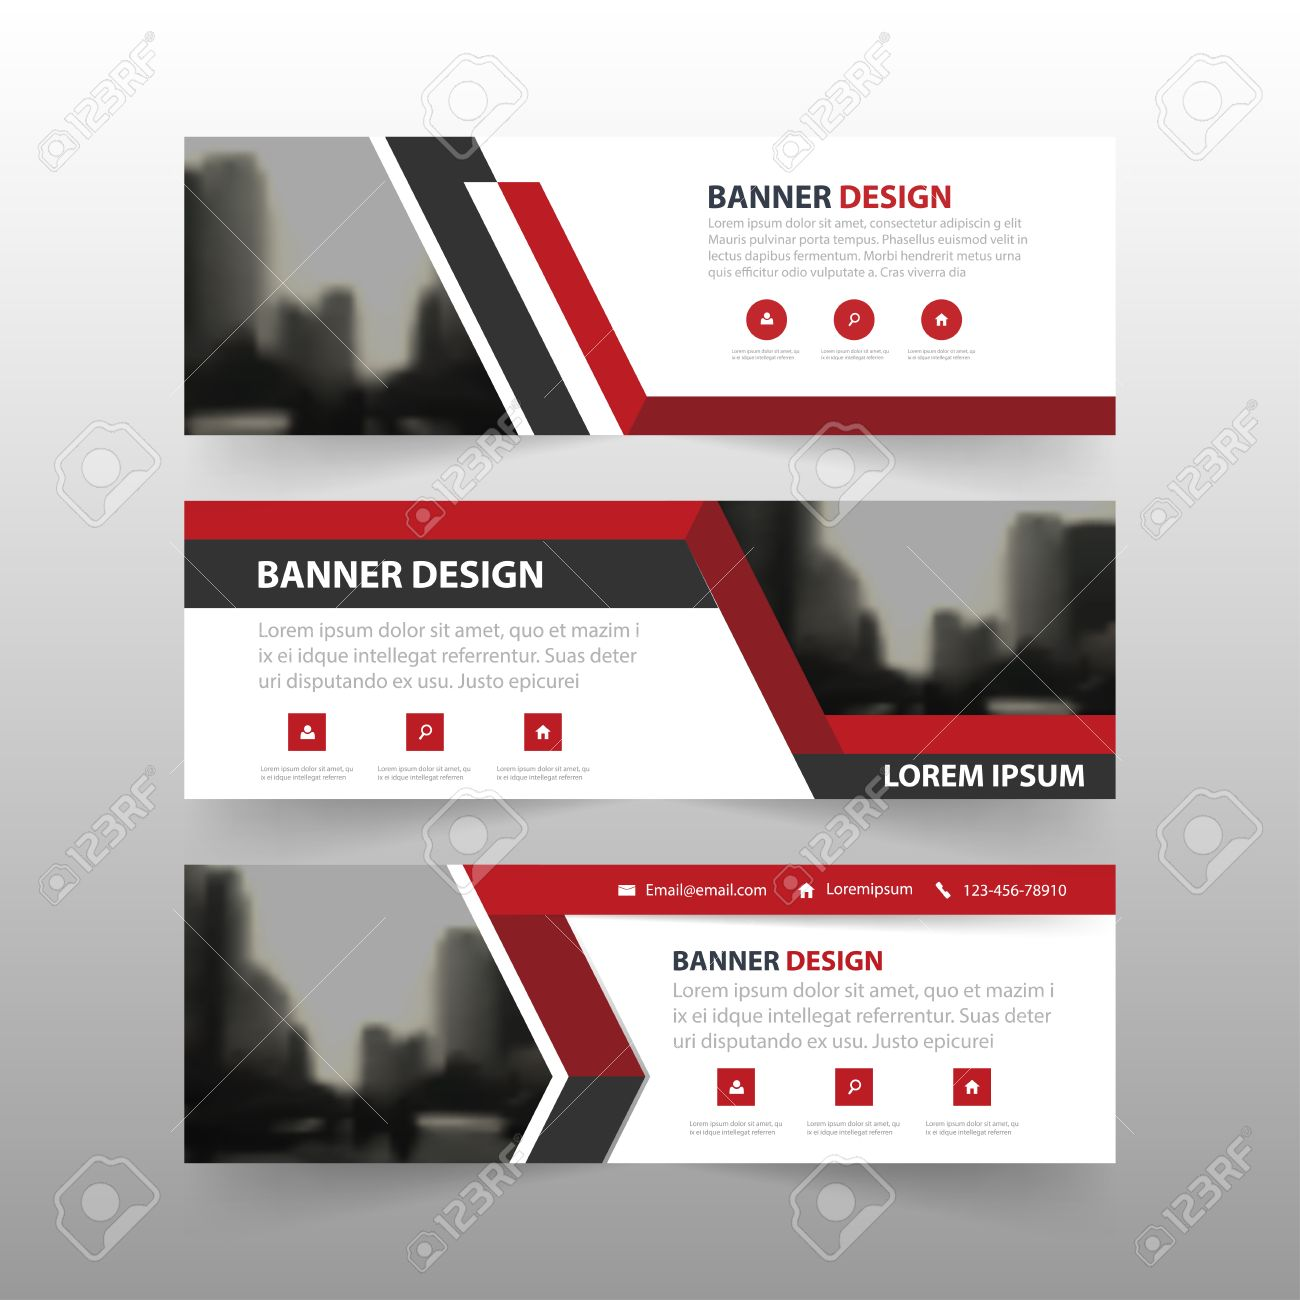 Red black triangle corporate business banner template, horizontal advertising business banner layout template flat design set , clean abstract cover header background for website design - 60204587